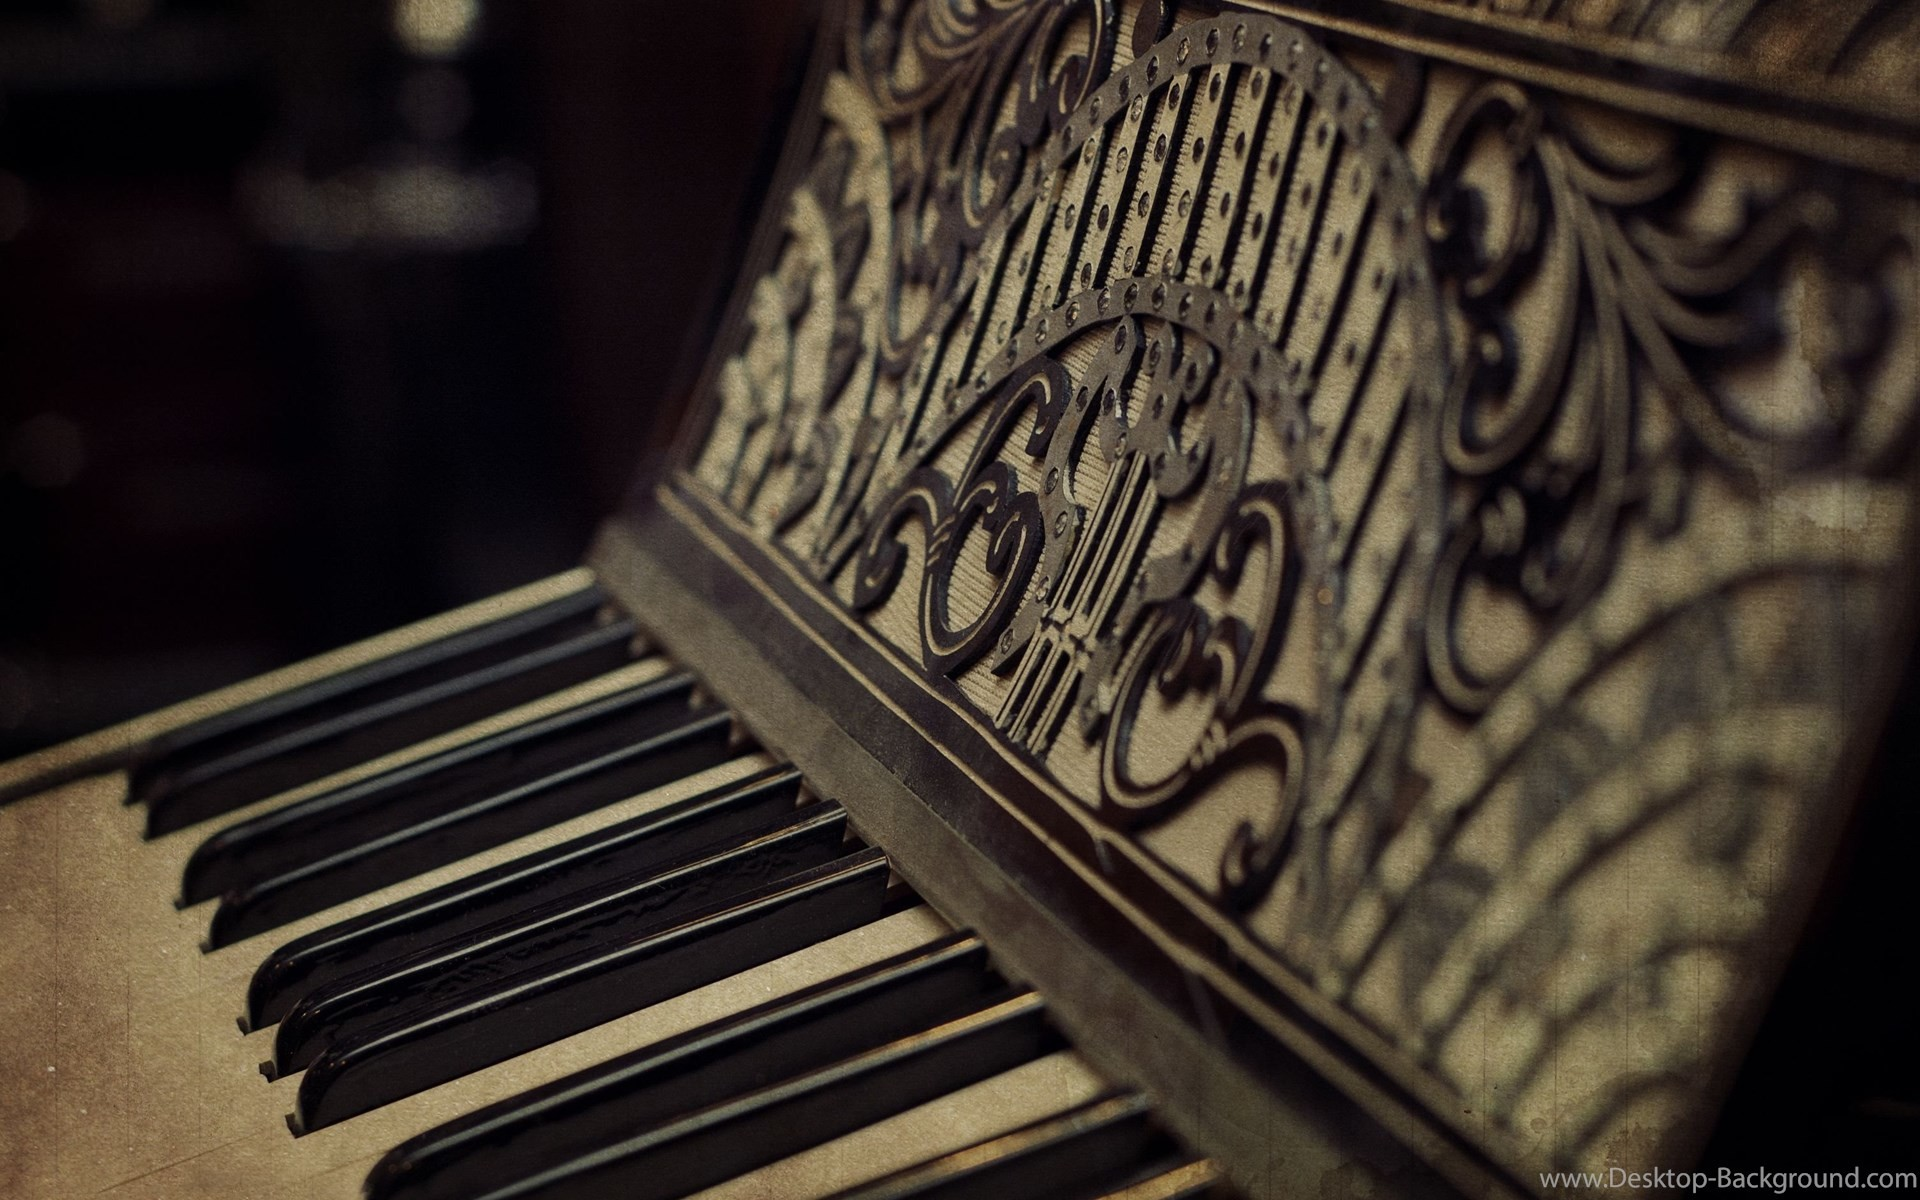 1920x1200 97+ Piano Wallpapers Wallpaper Cave. Piano Wallpaper .